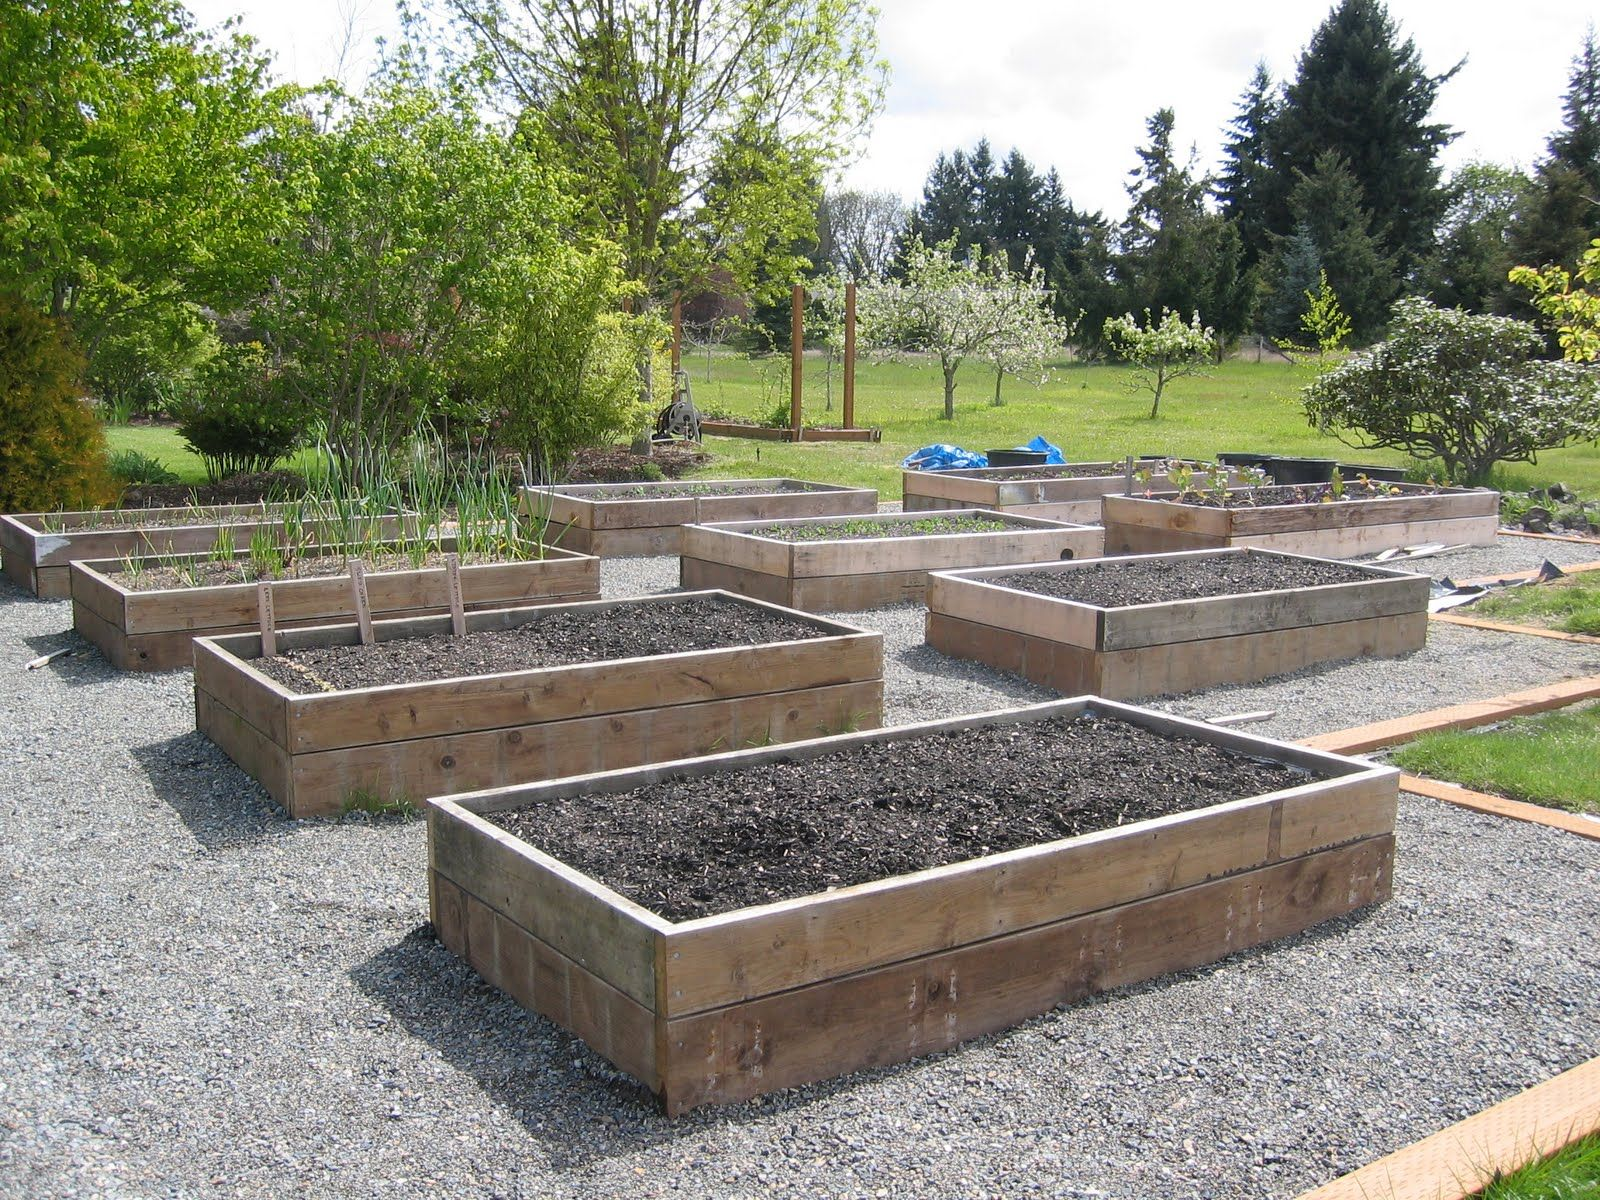 Raised vegetable garden layout 4x8 - Find This Pin And More On 220 Veggie Garden Raised Bed Garden Ideas How To Build Raised Vegetable Garden Woodworking Project Plans